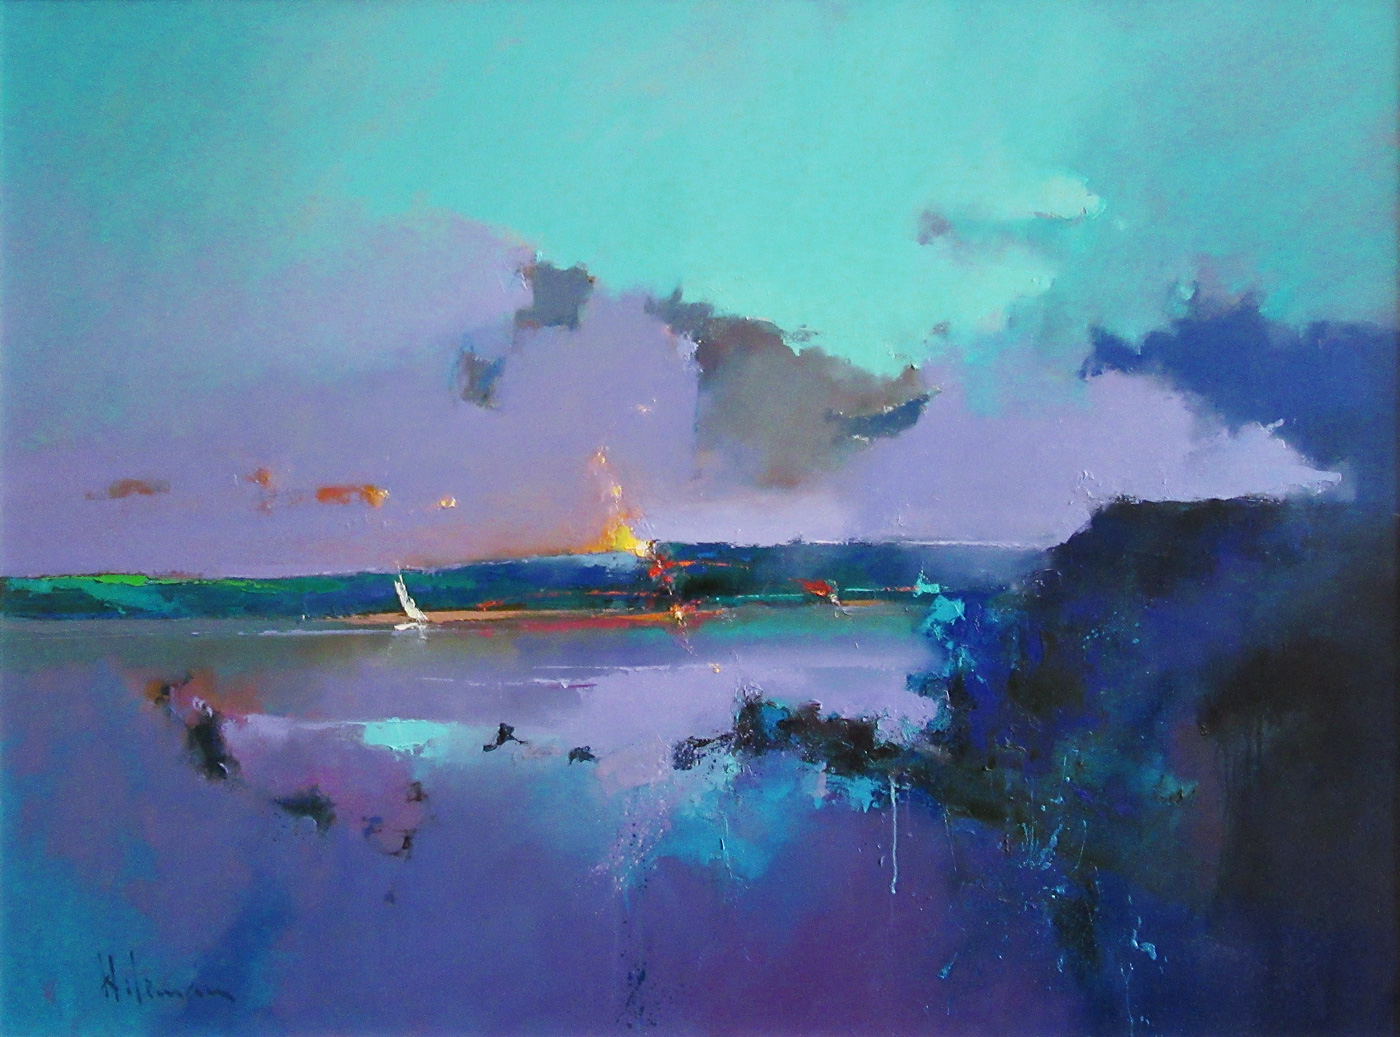 Notes on a Breeze by  Peter Wileman PPROI RSMA FRSA